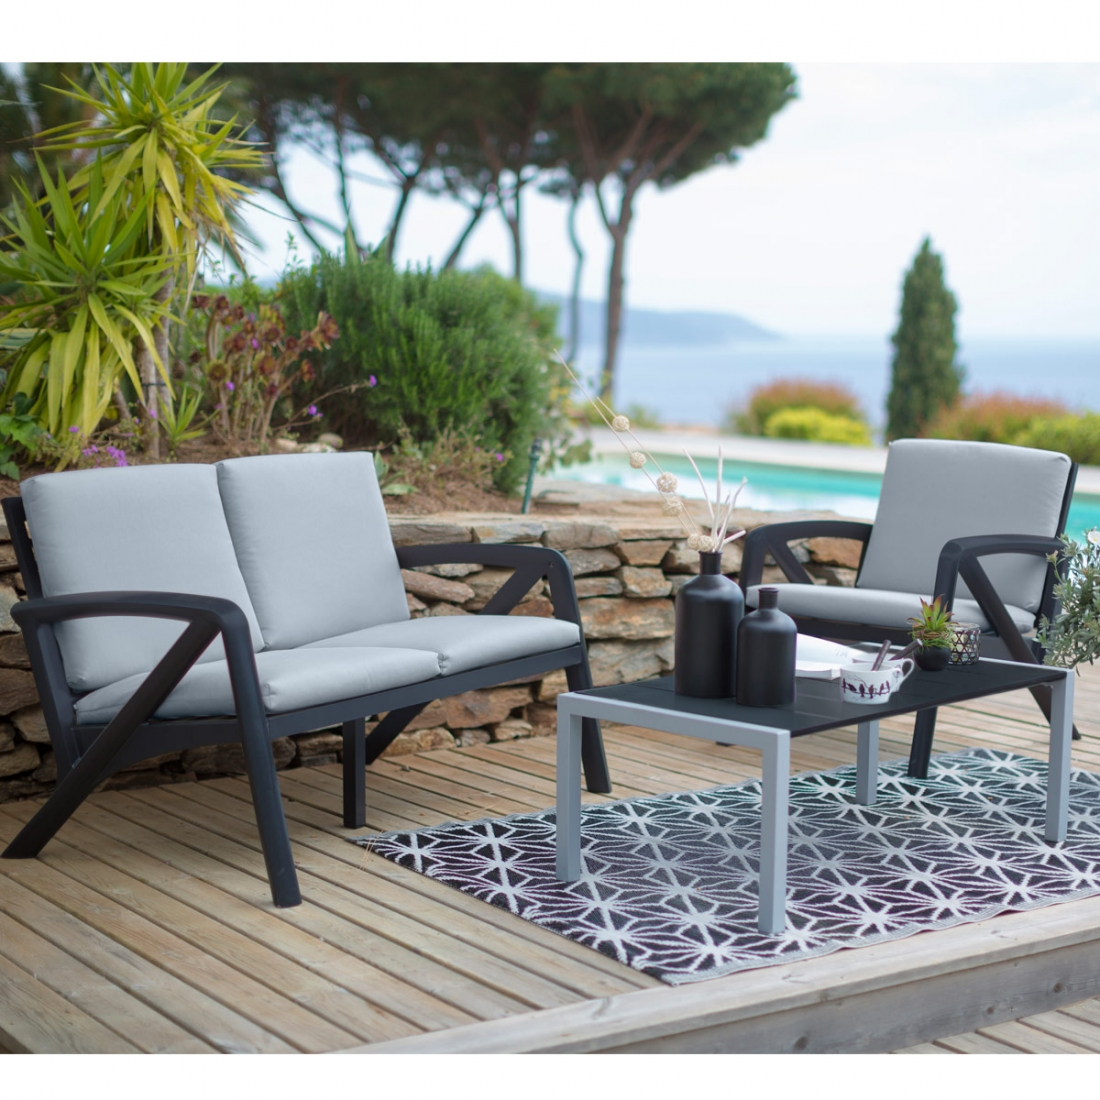 Salon de jardin lounge sunday barcelone design grosfillex - Salon de jardin en verre ...